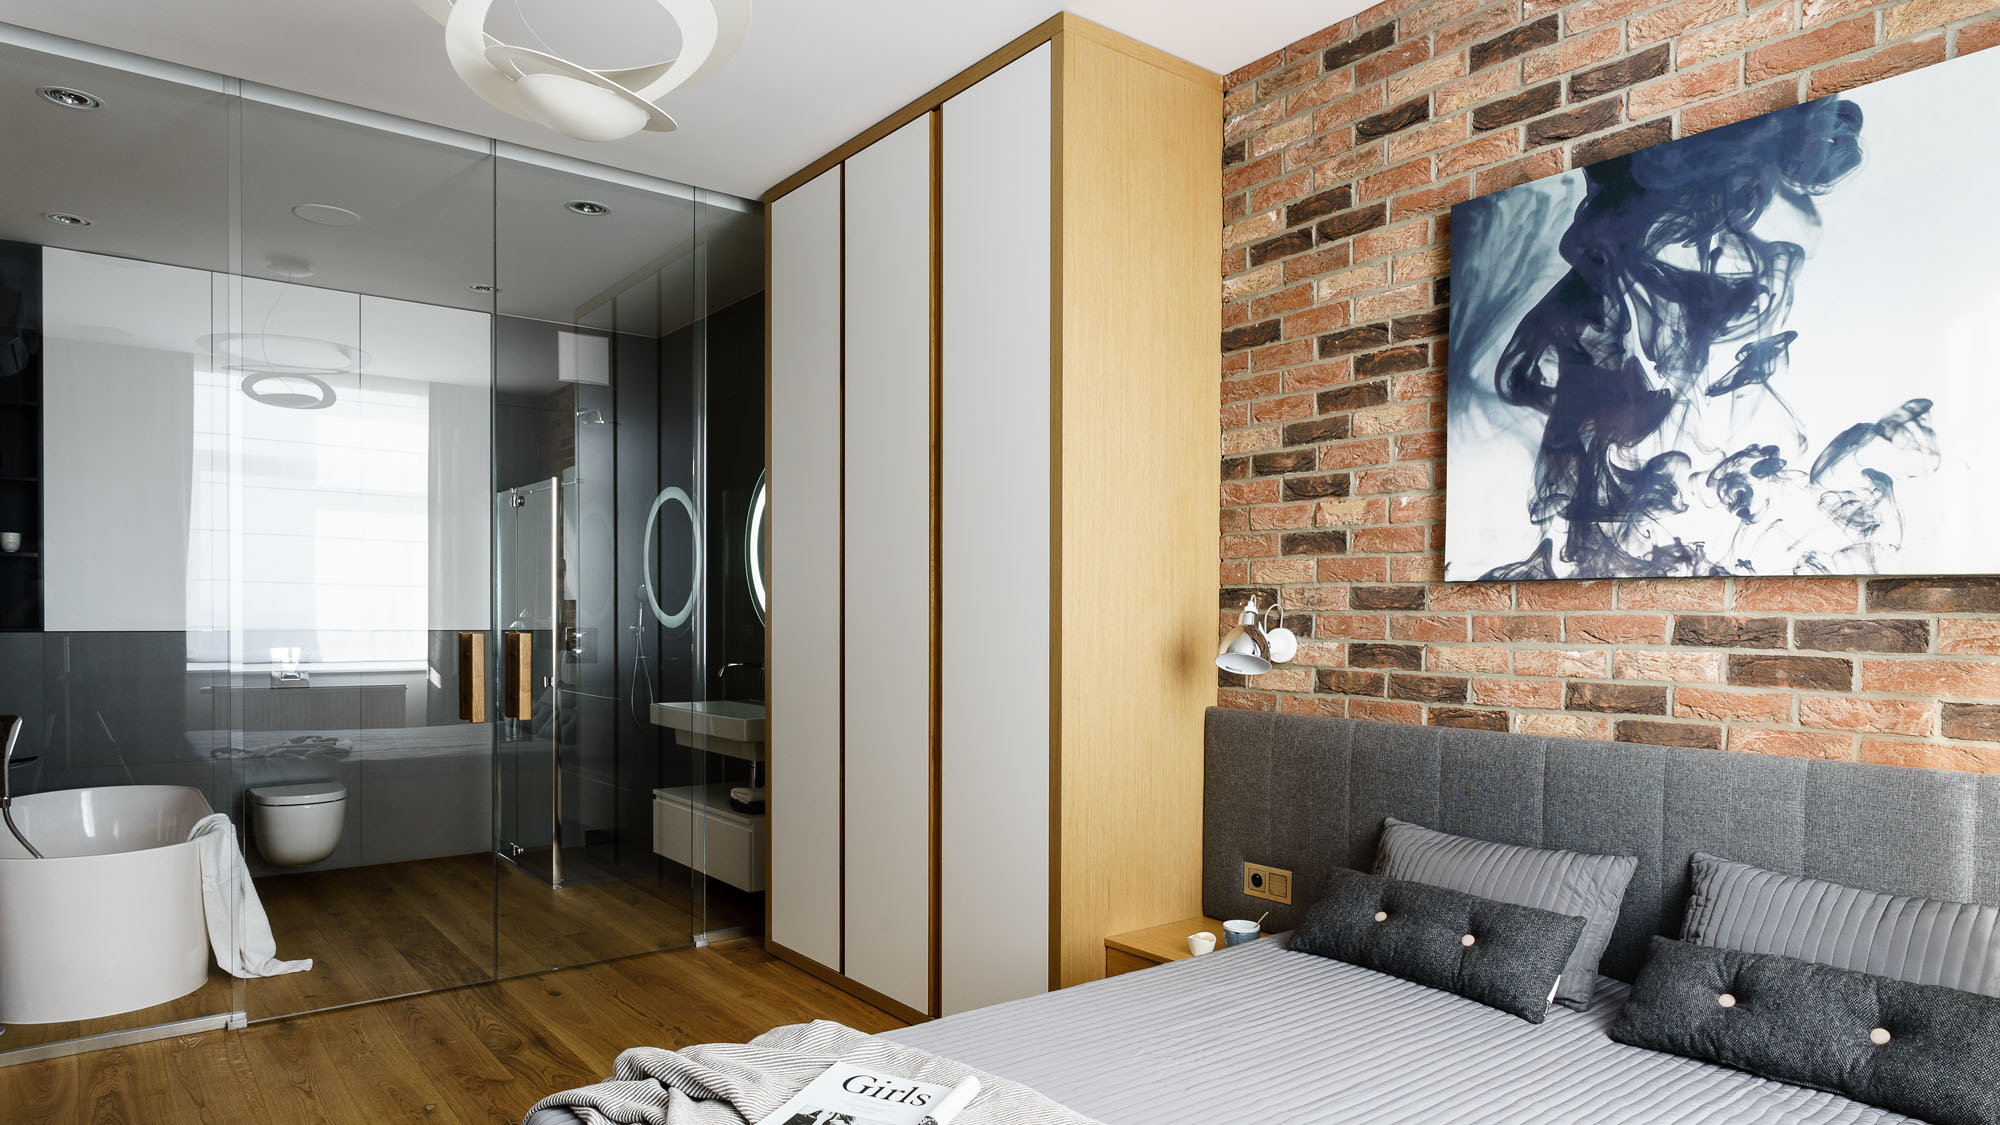 Modern Metallic, Wooden, White Theme Three Bedroom Apartment in Gdynia by Dragon Art-31